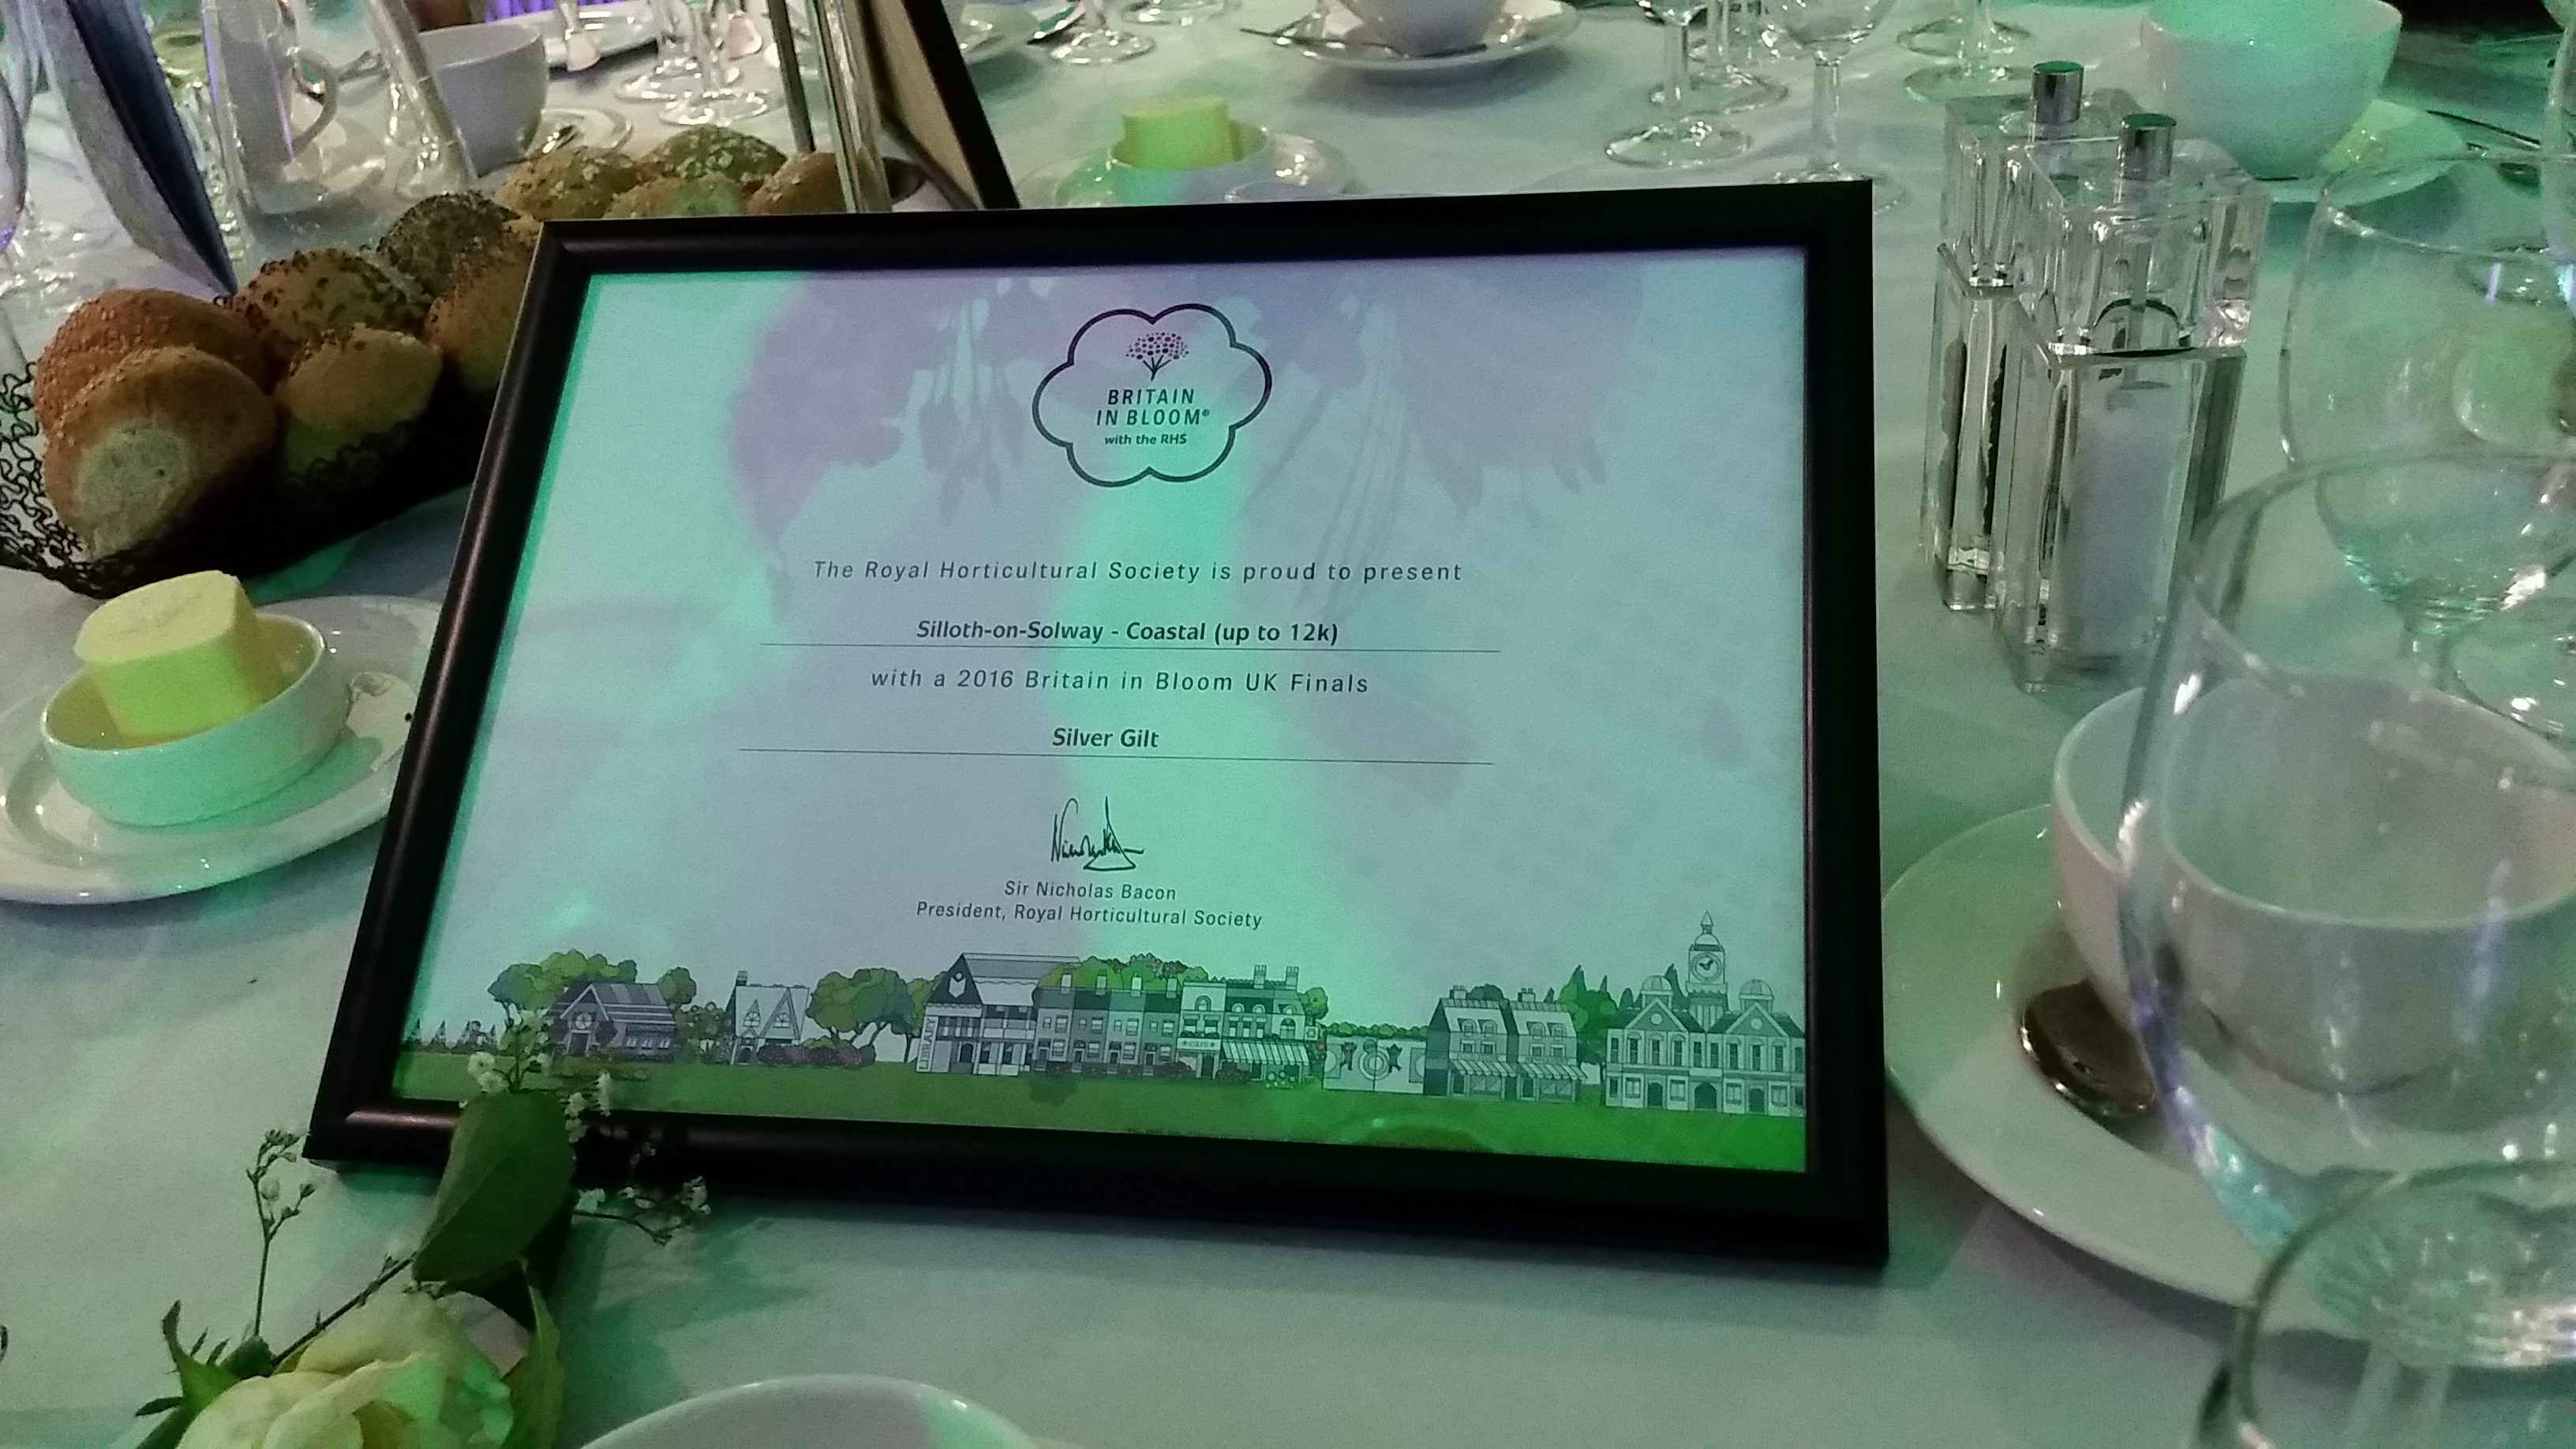 Britain in Bloom UK Finals Awards Ceremony 2016